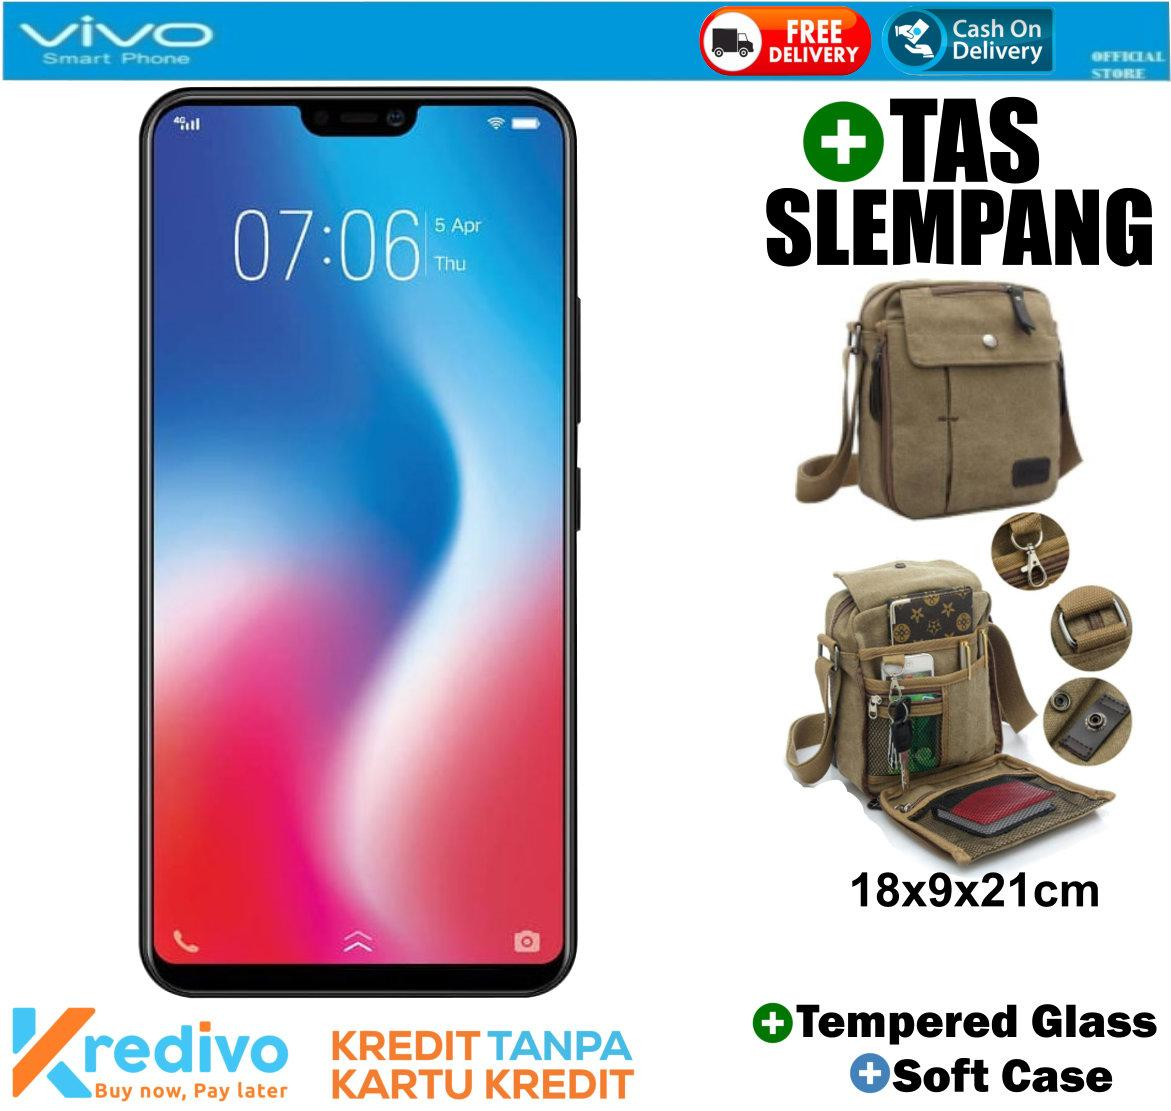 VIVO V9 4/64 - Black Plus Tas Slempang